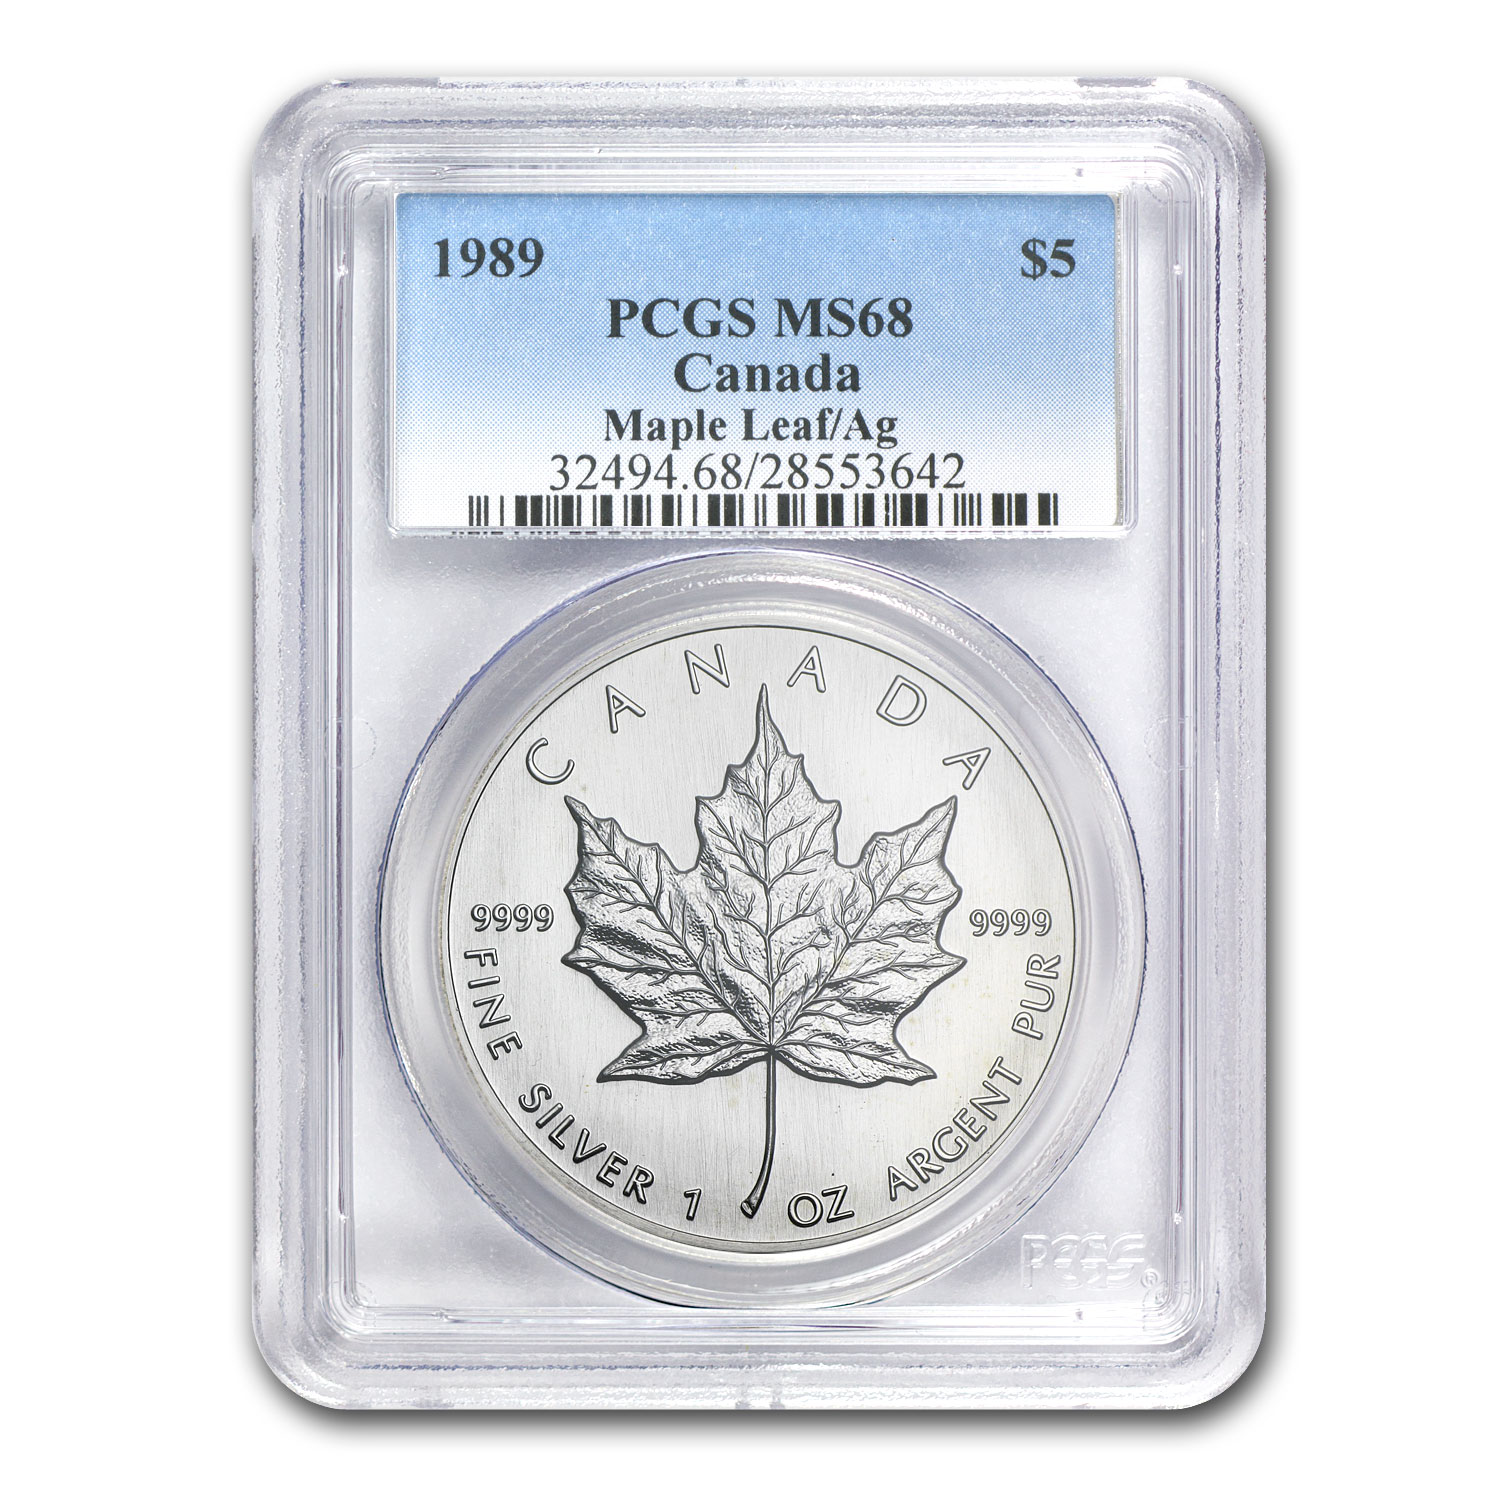 1989 1 oz Silver Canadian Maple Leaf MS-68 PCGS